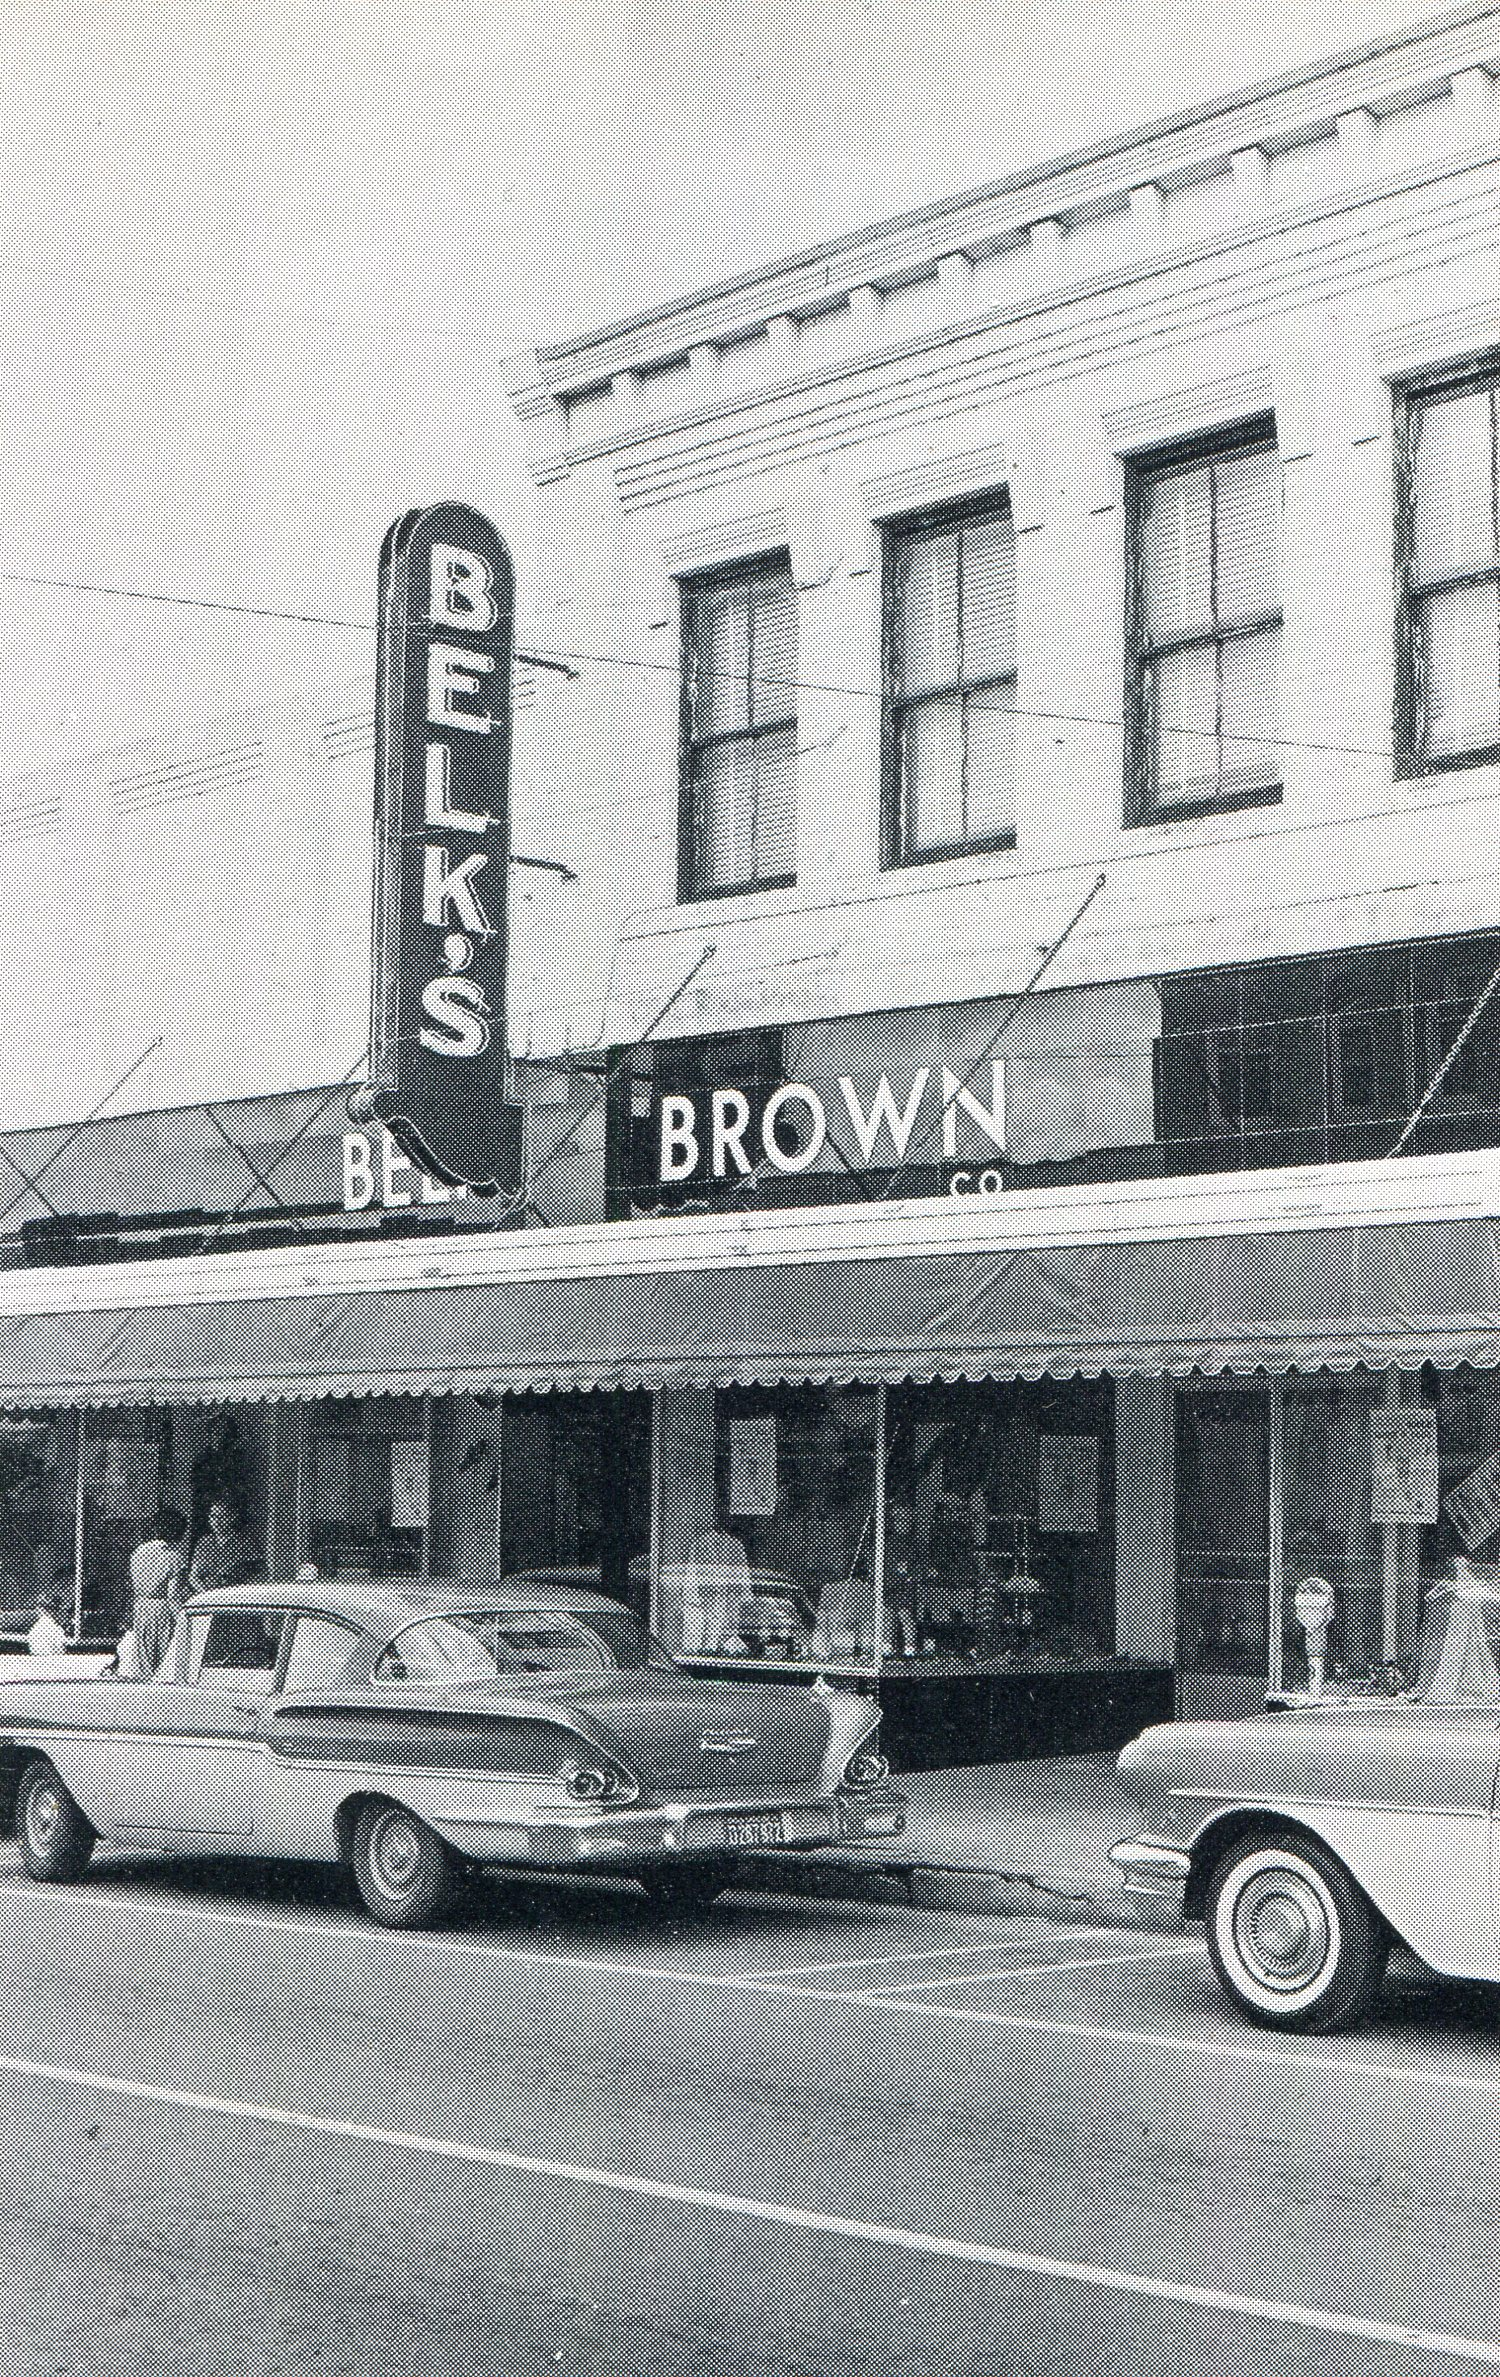 Belk Brown marquee spanning both buildings at 225 and 227 Main Street